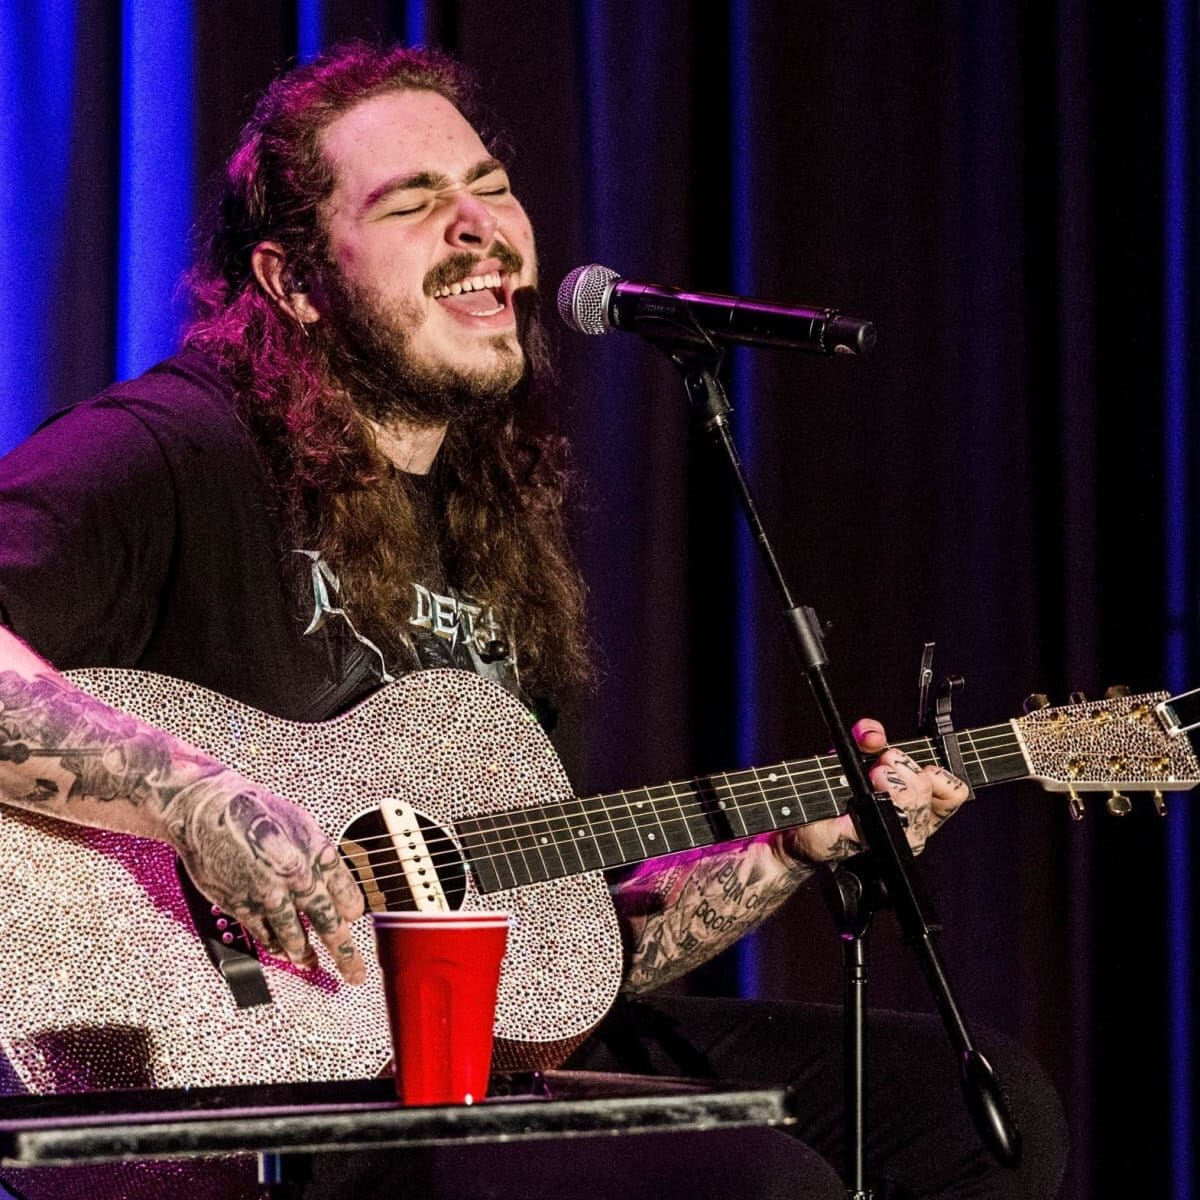 """Watch Post Malone Grab a Guitar and Debut His New Moody Sound With """"Stay"""" - Maxim"""